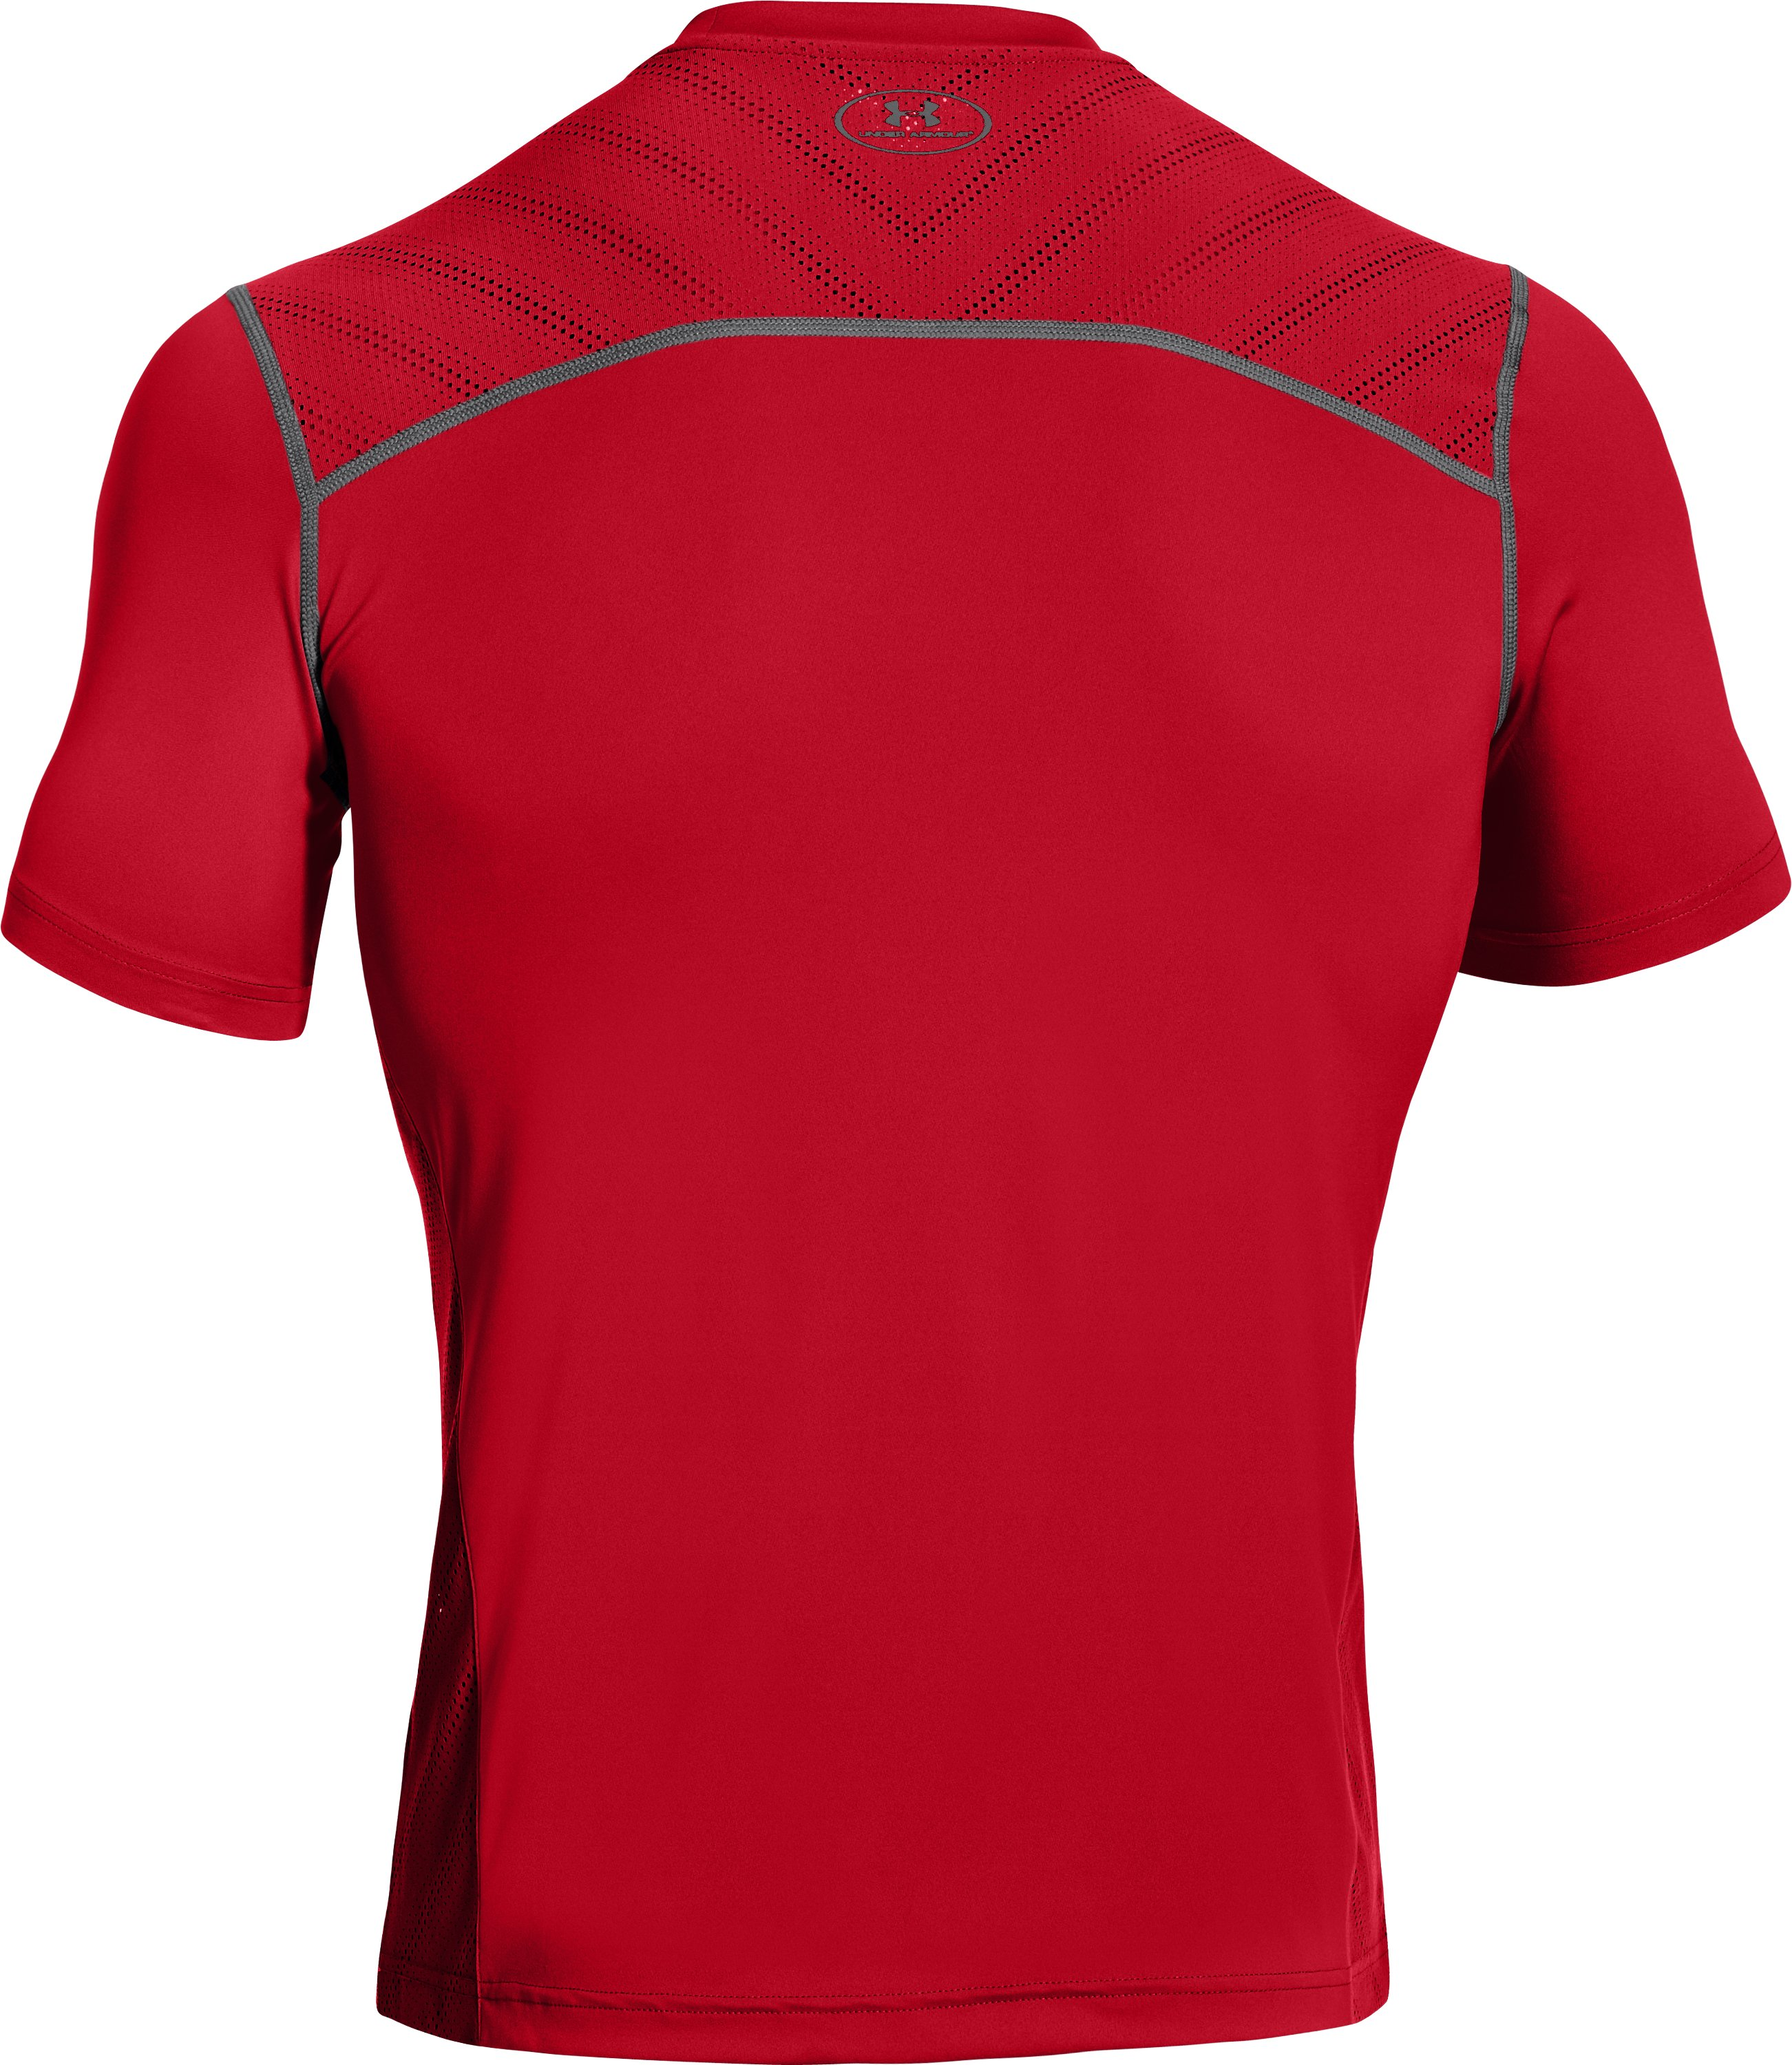 Men's HeatGear® ArmourVent™ Training T-Shirt, Red, undefined